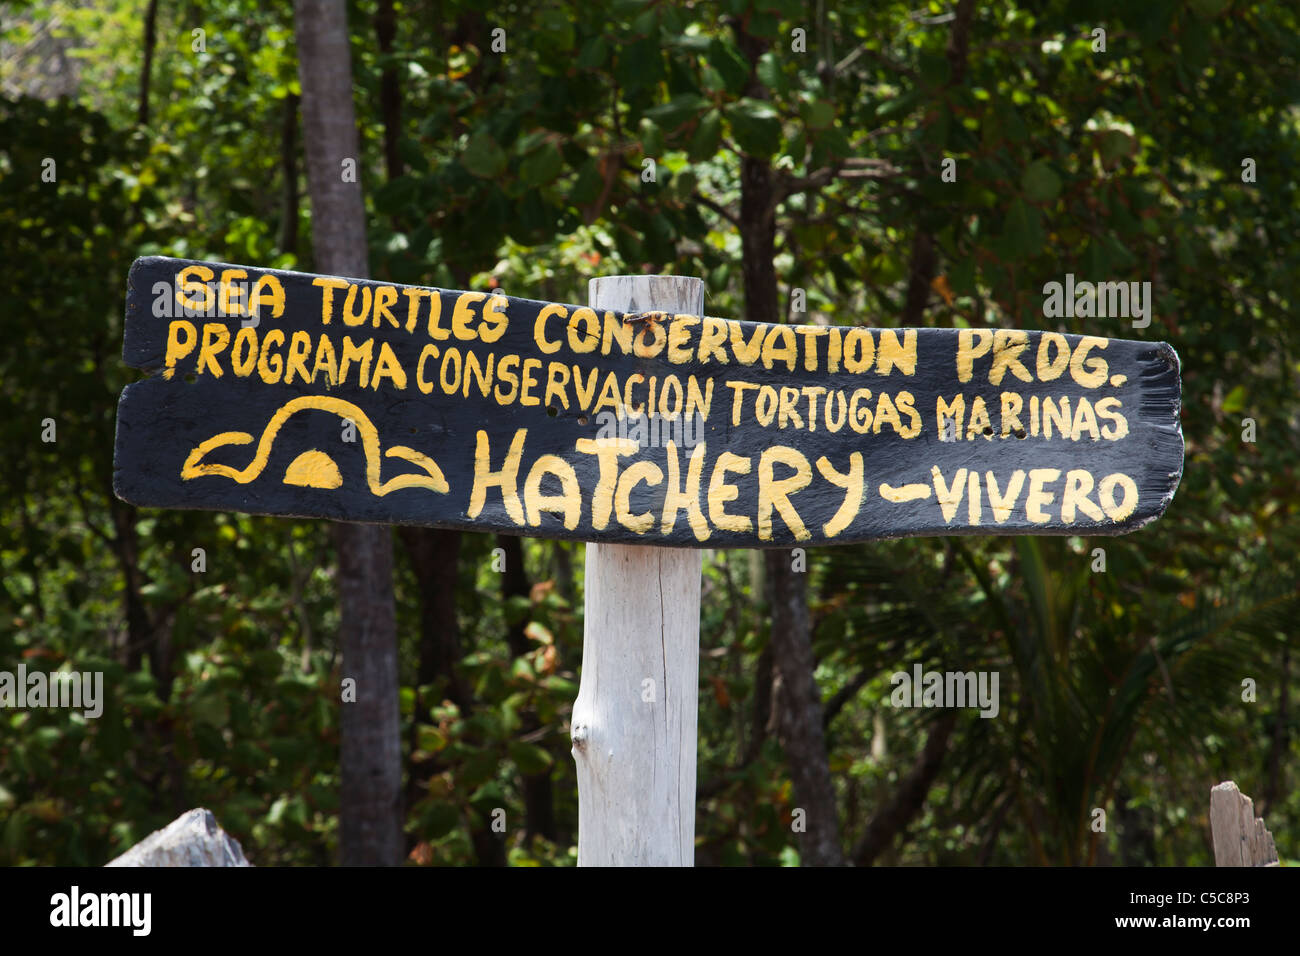 Sea Turtle conservation project Montezuma Costa Rica - Stock Image